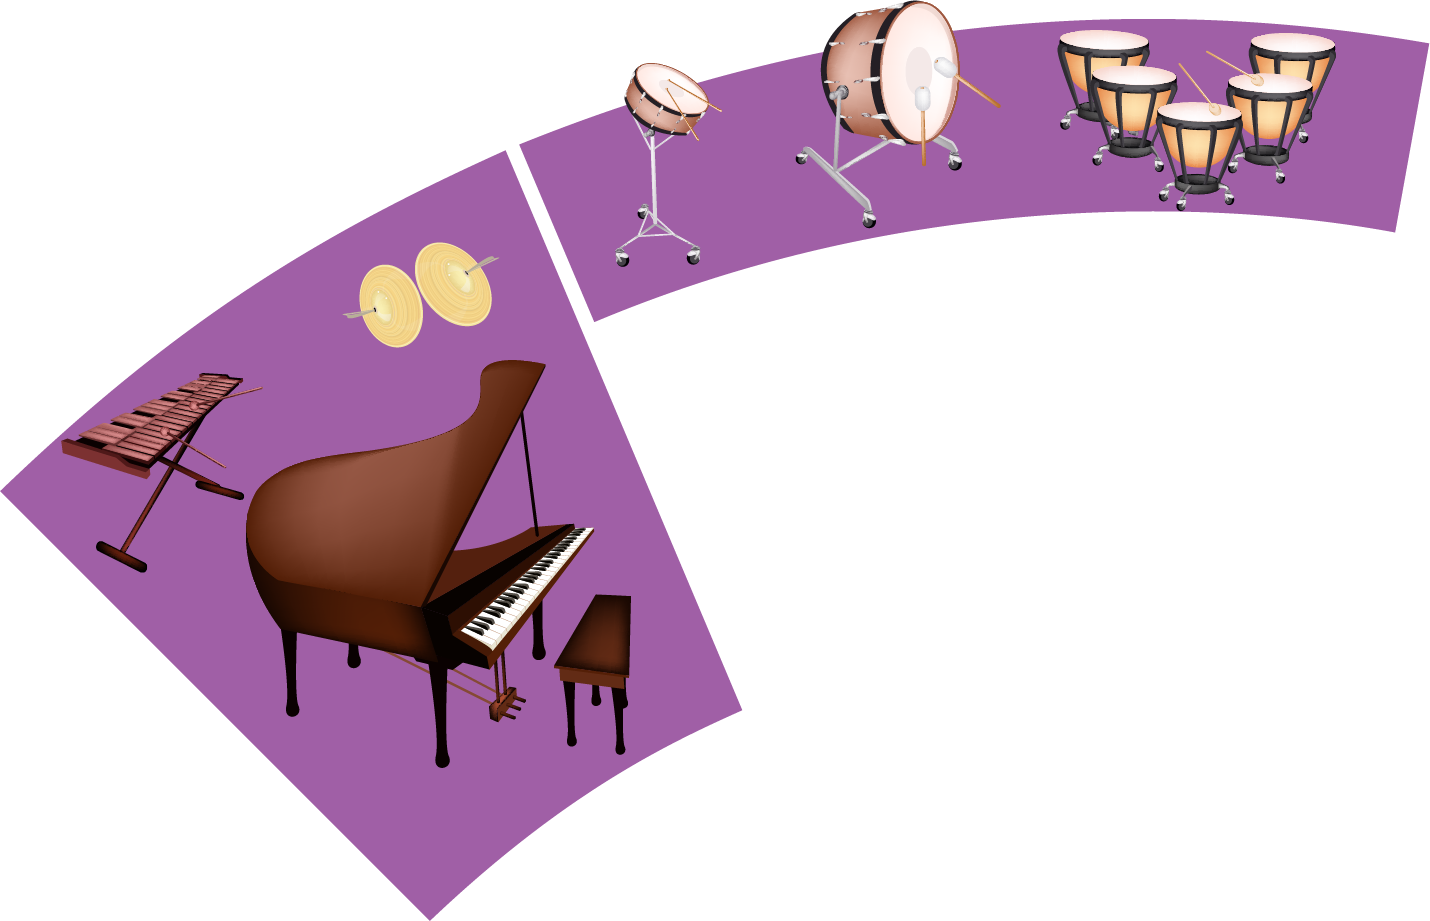 Xylophone clipart sounds. Percussion kids reno philharmonic